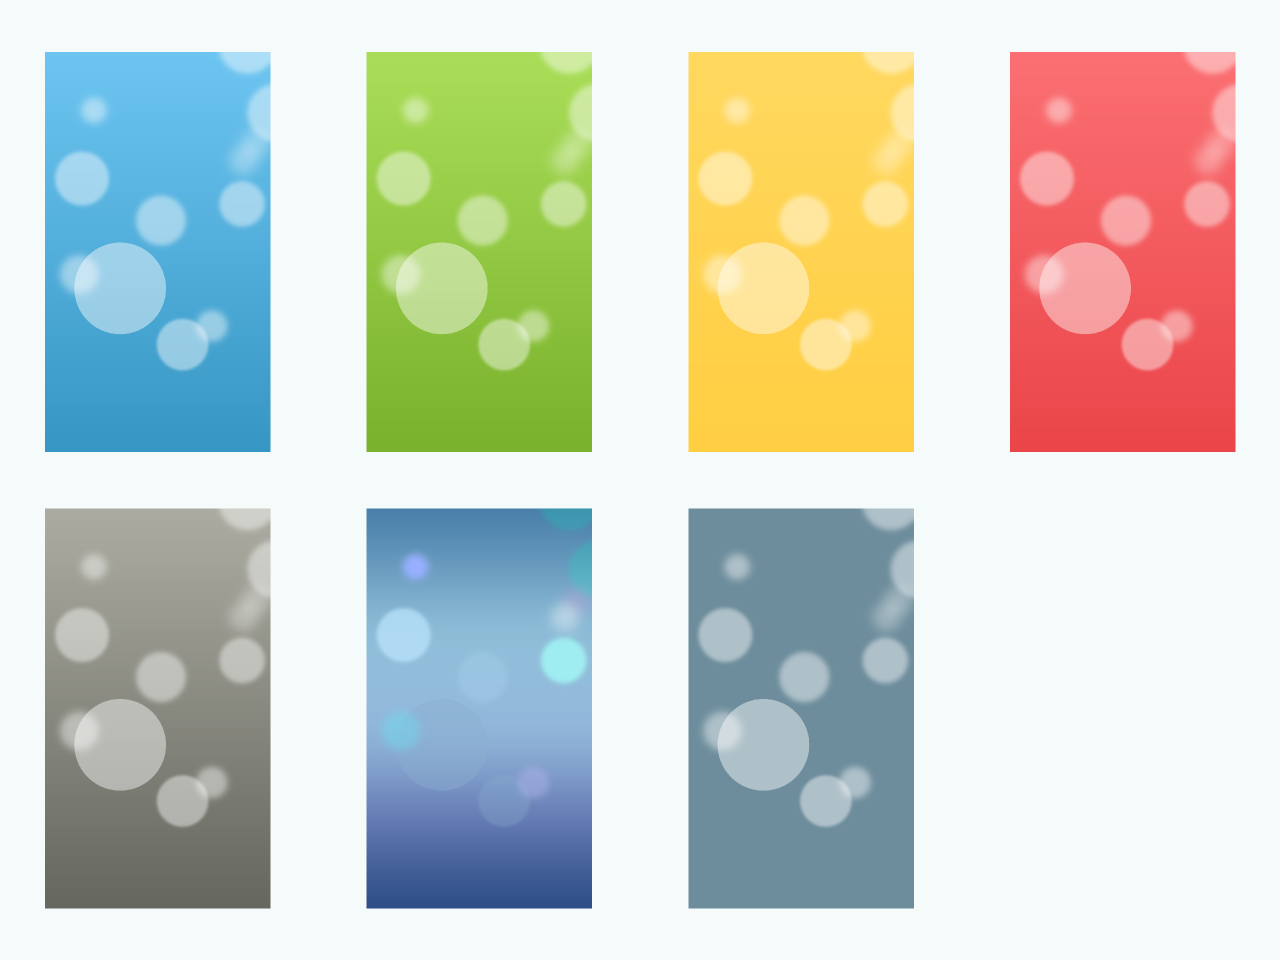 ... iOS 7 Wallpapers in multiple colors by TheGoldenBox